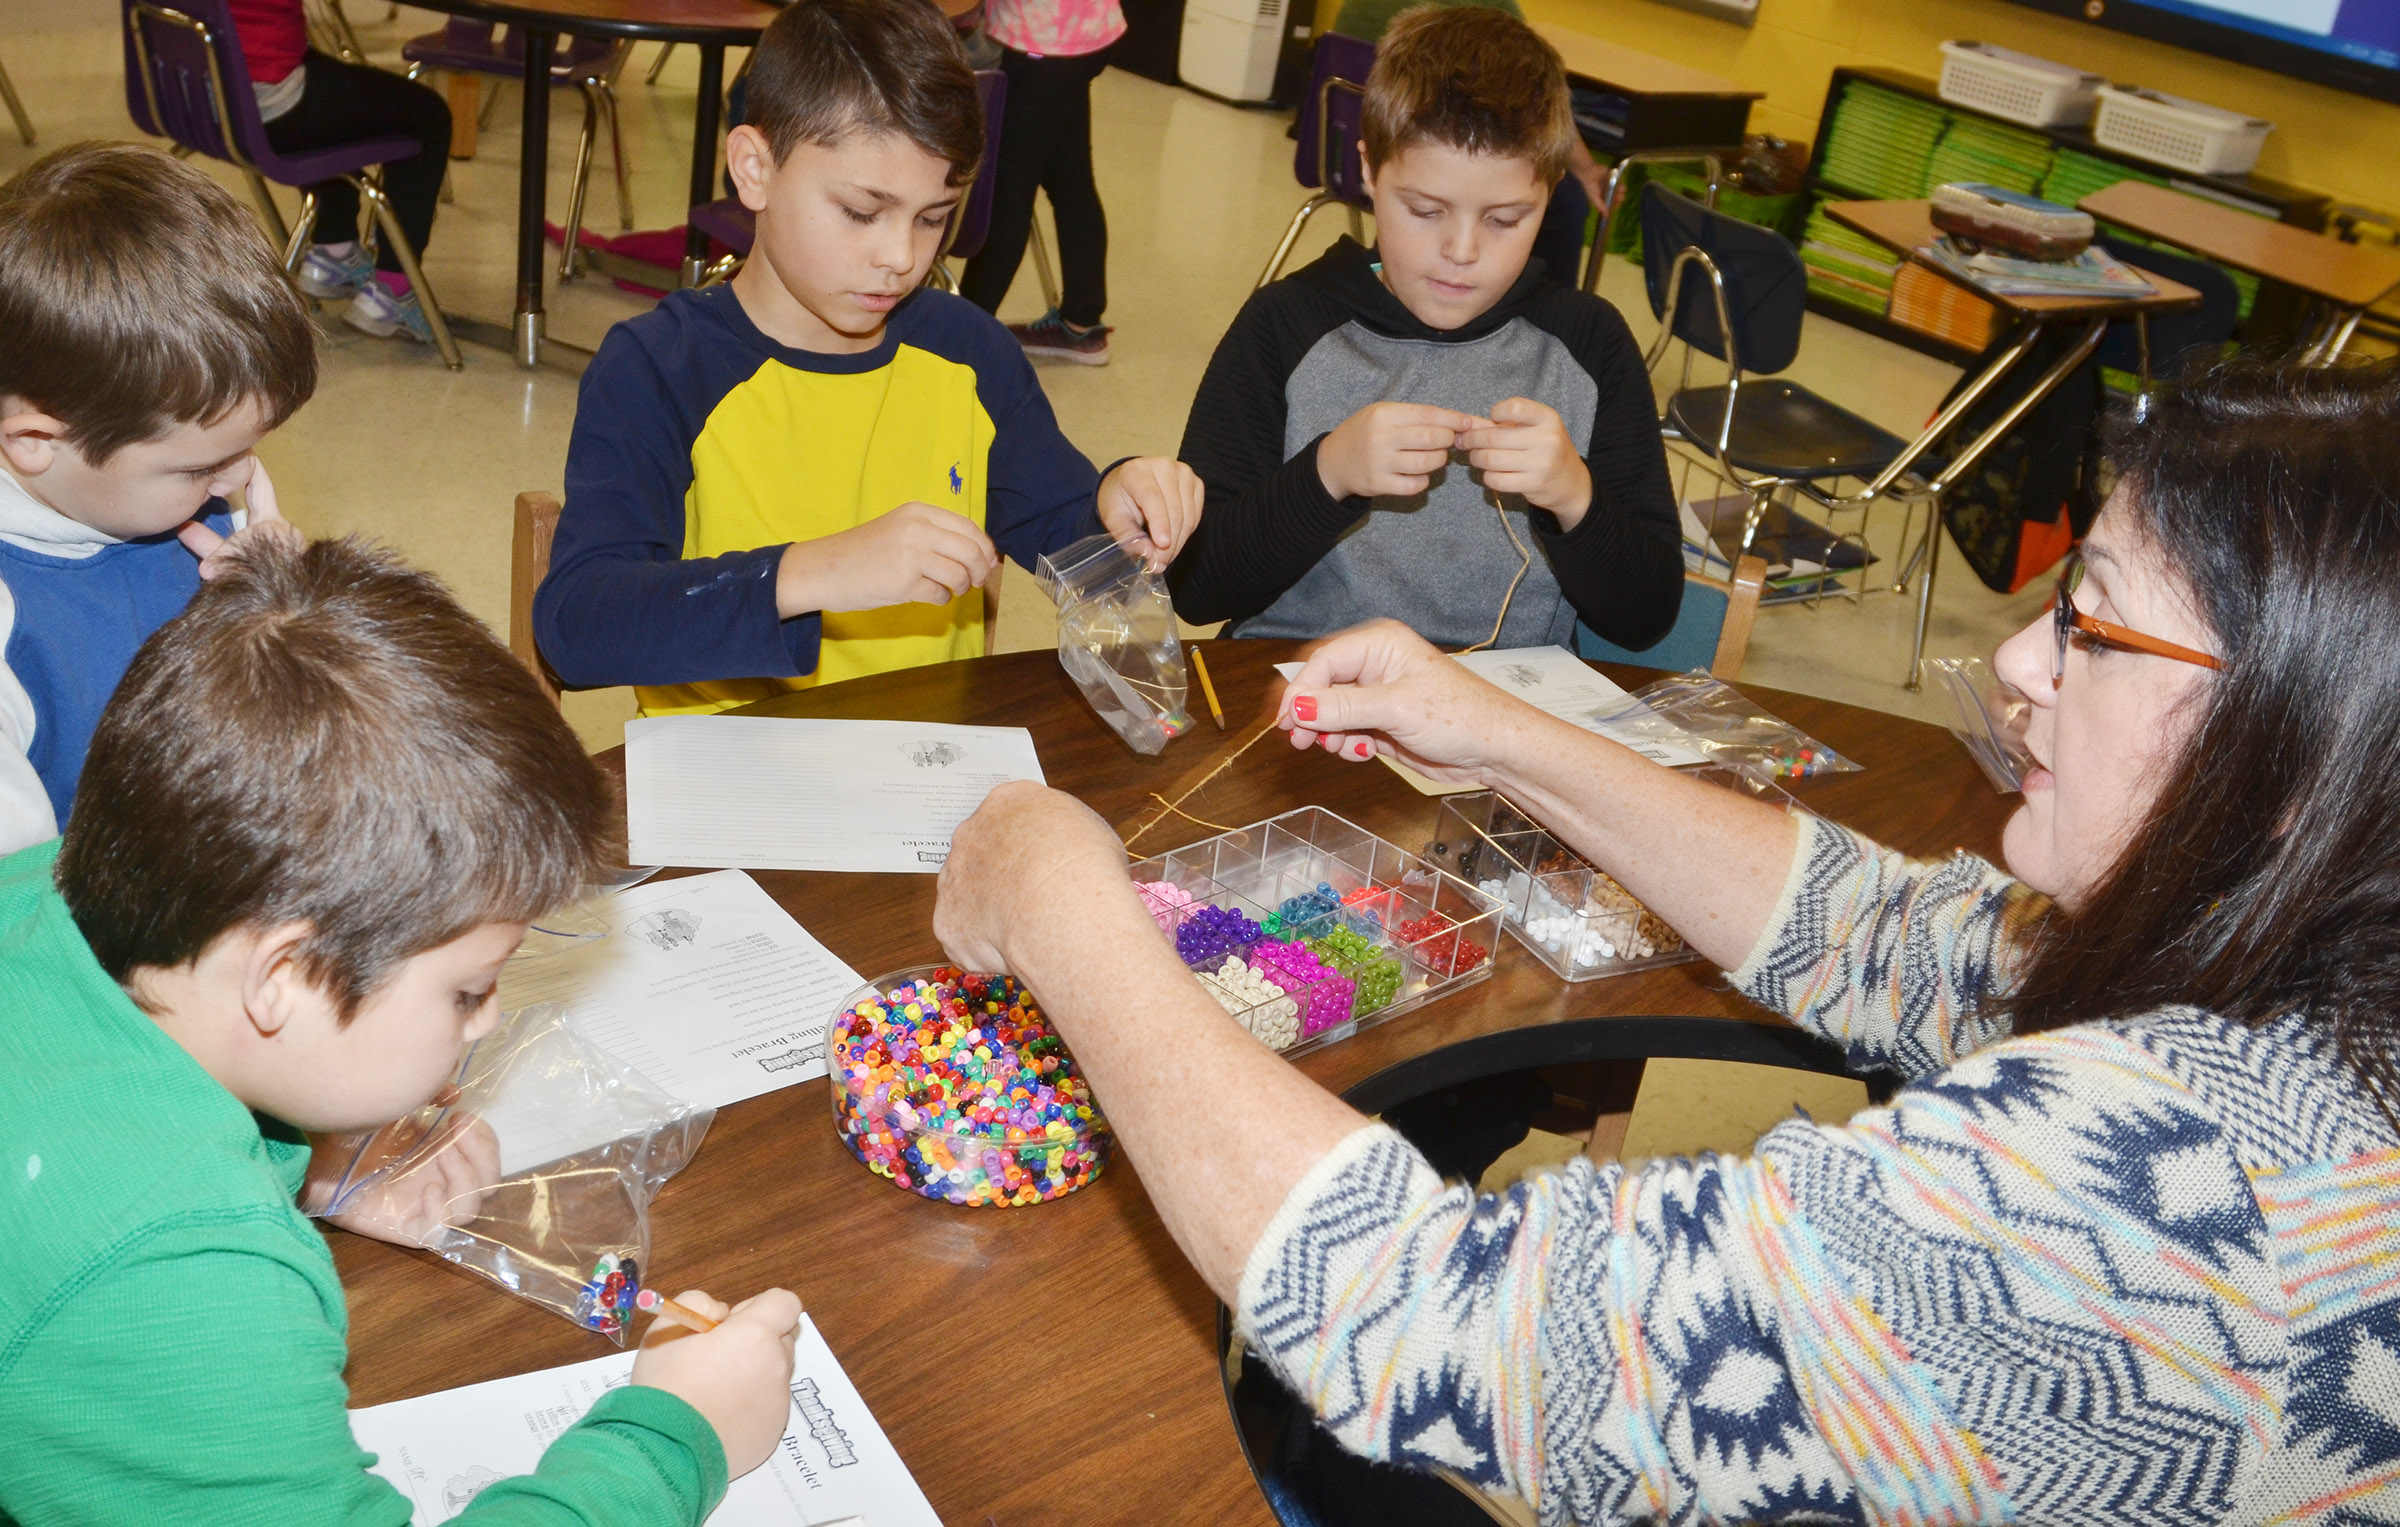 CES third-grade teacher Patty Haley helps students, from left, Dre'mareon Gurley, Seamus Huber, Braygon Noegel and Emerson Gowin make their Thanksgiving bracelets.